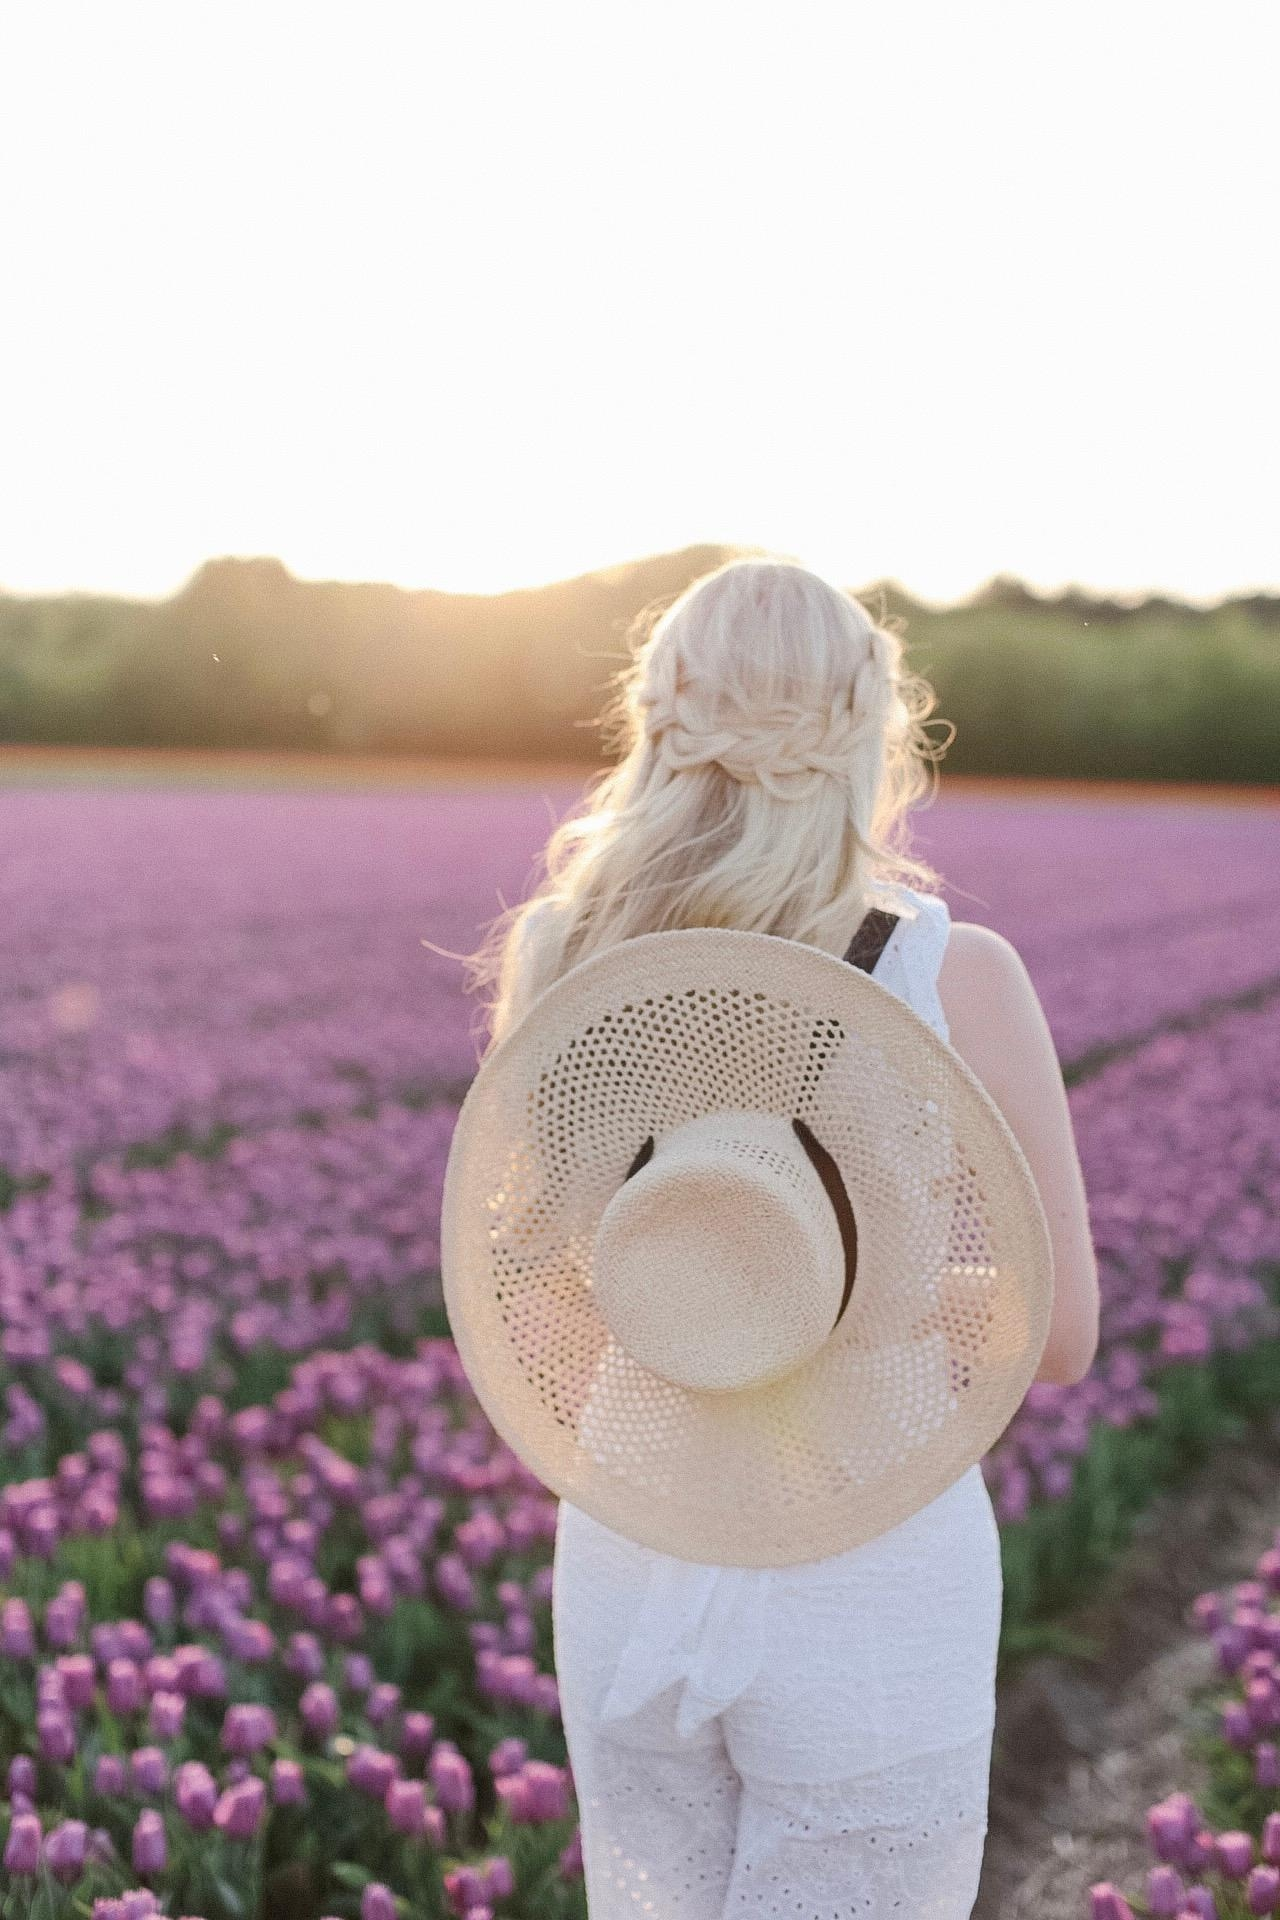 Spring fashion vibes 🌷👒